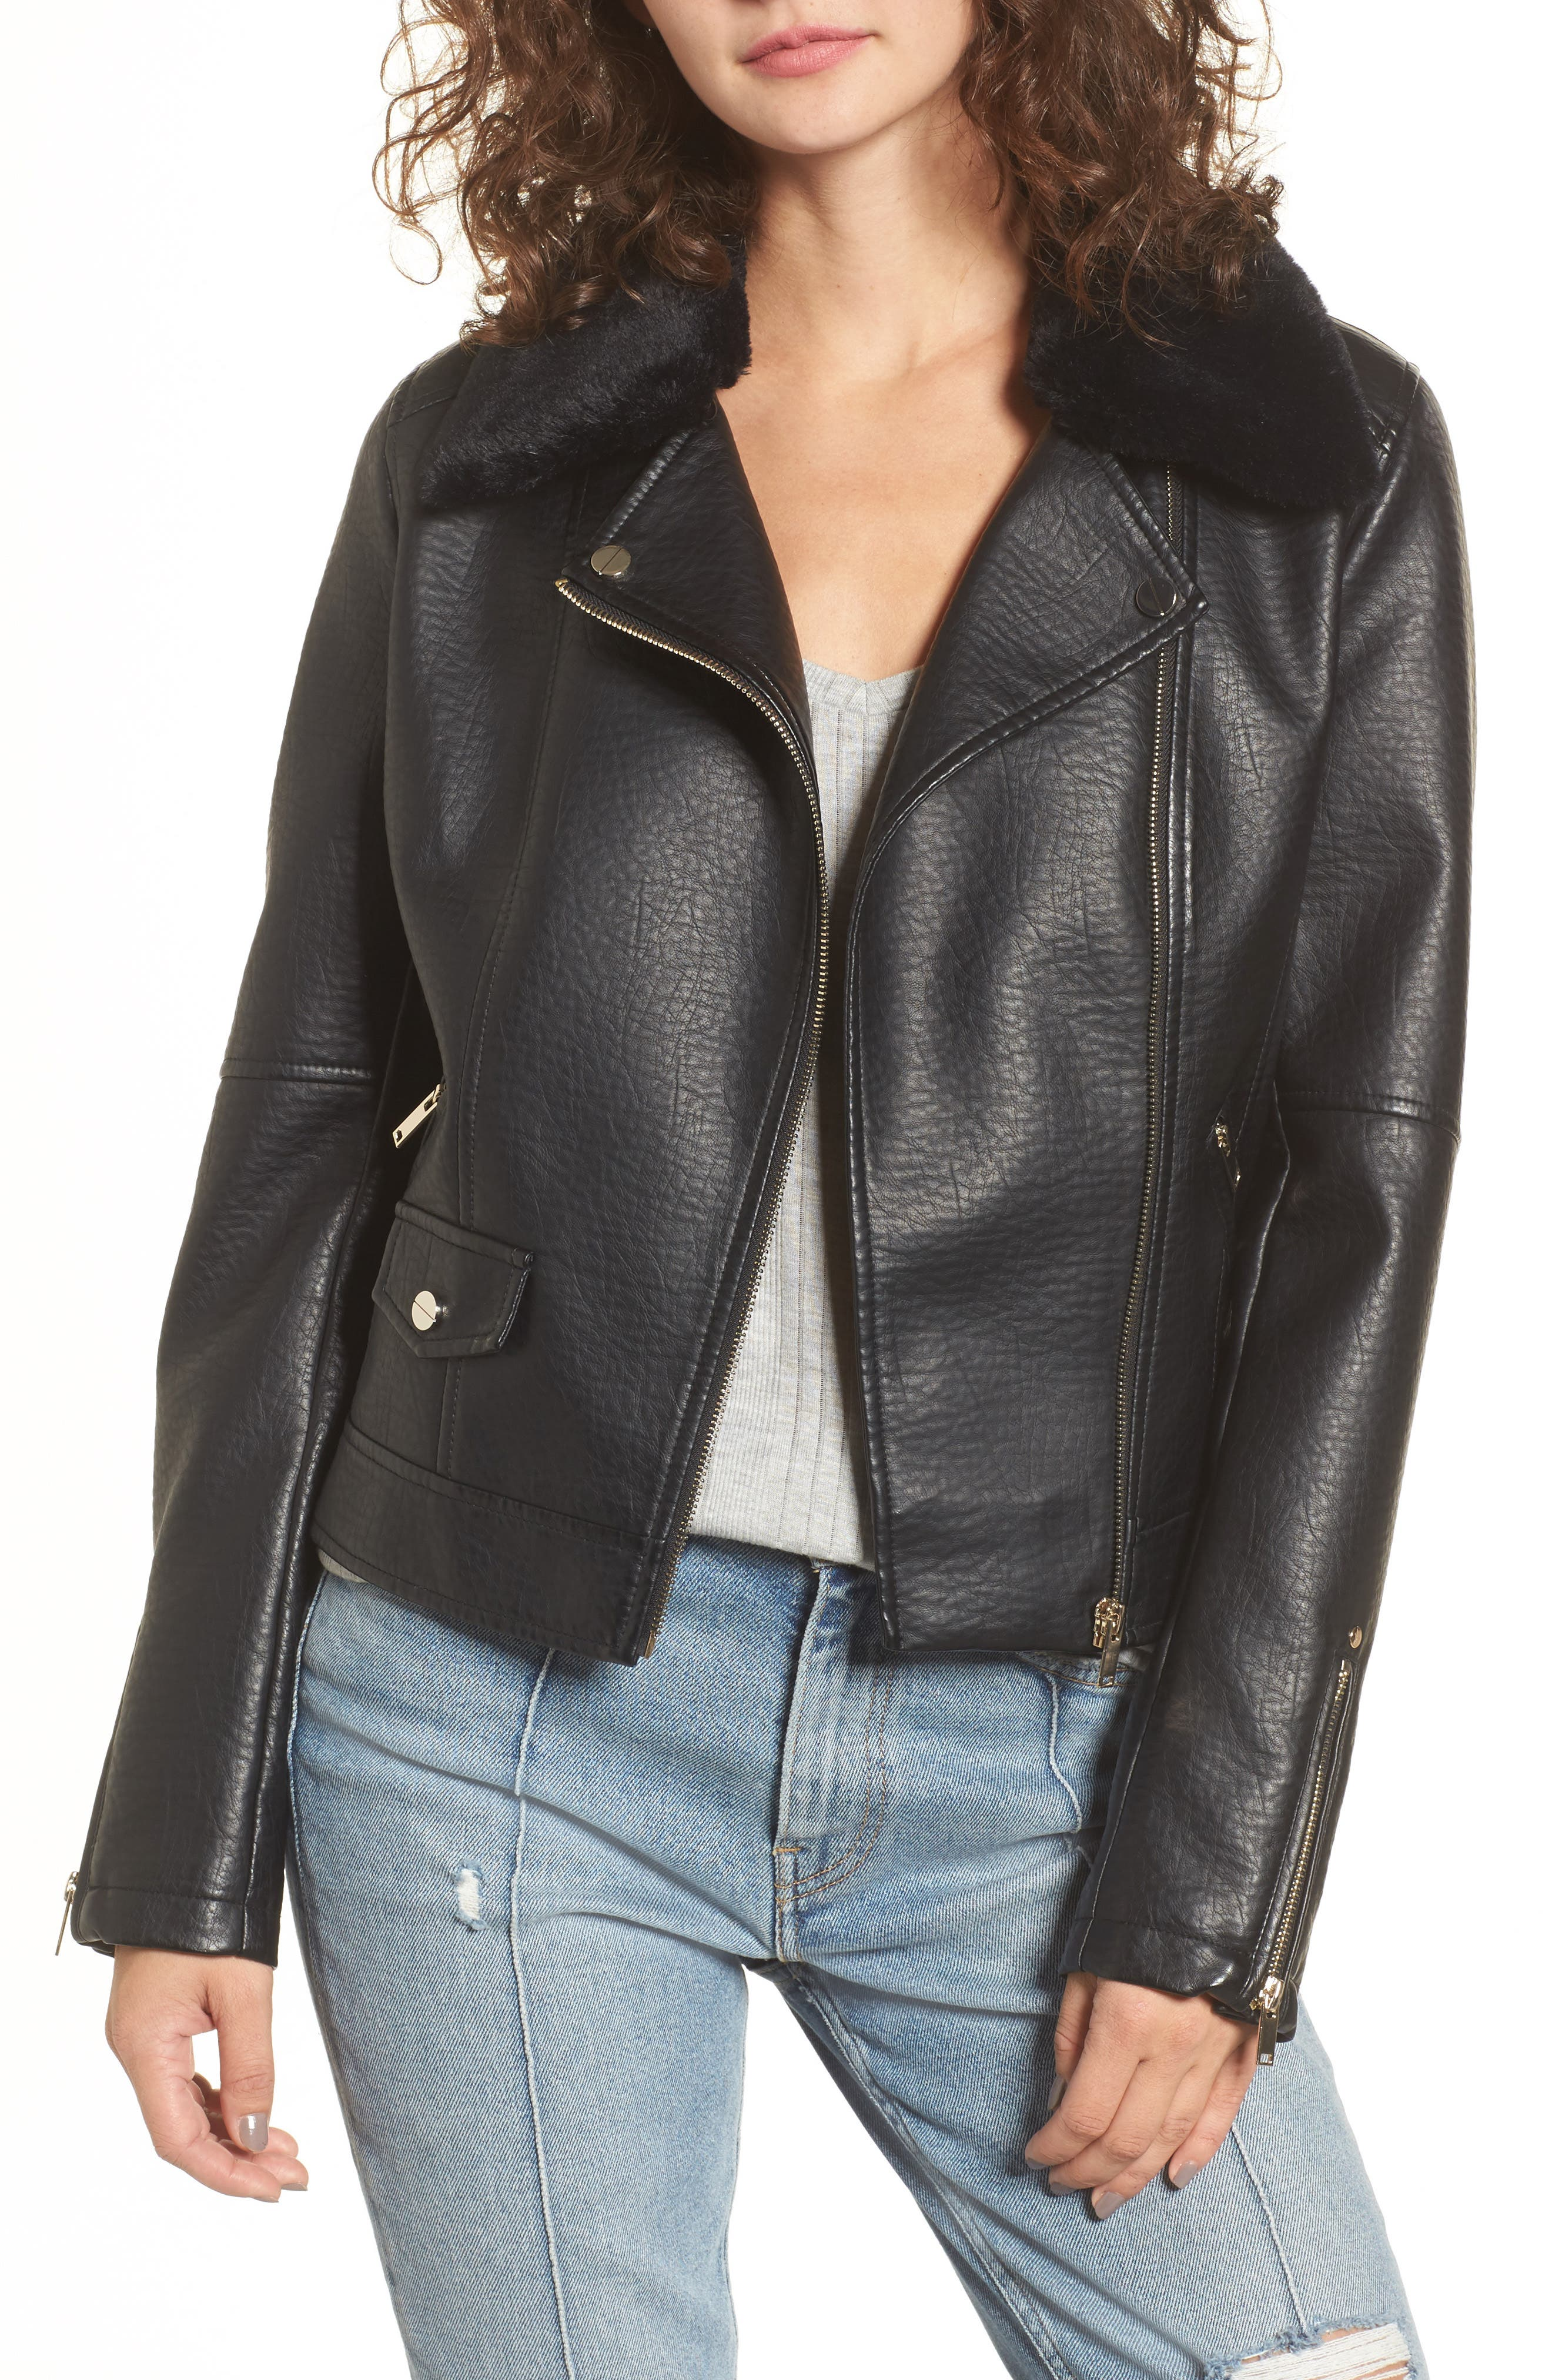 Main Image - Coffee Shop Textured Faux Leather Jacket with Removable Faux Fur Trim